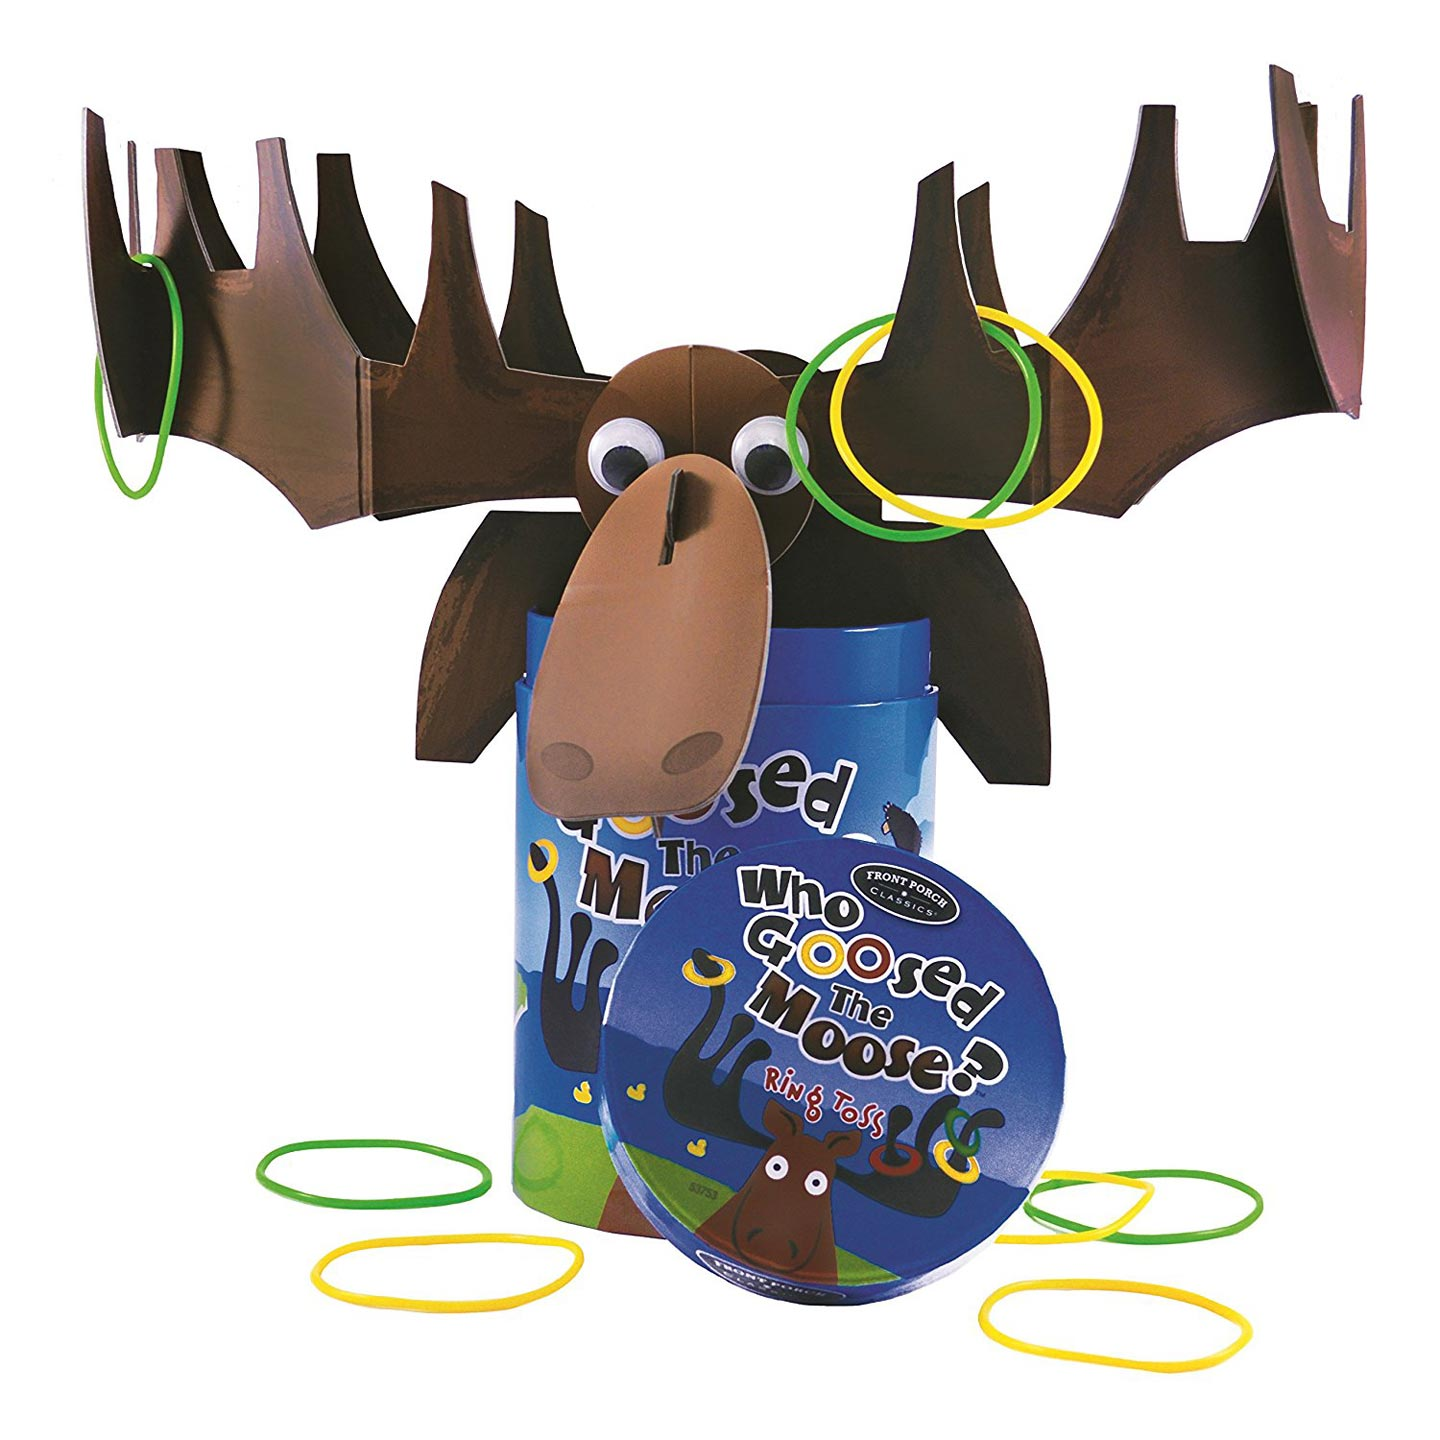 Front Porch Classics Who Goosed the Moose Ring Toss Game by University Games